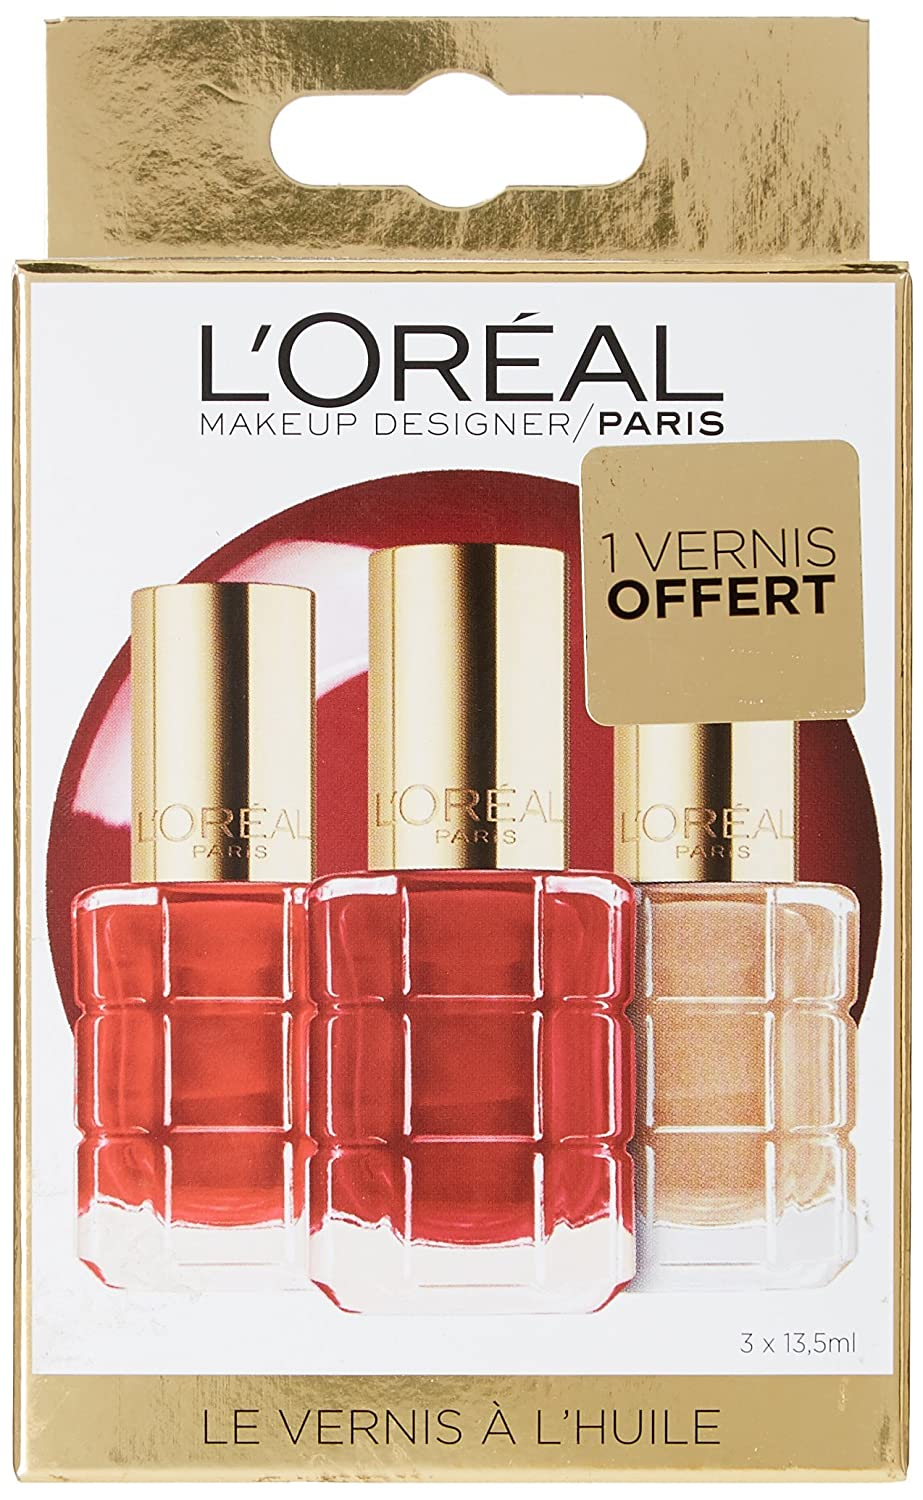 L'Oréal Paris Make Up Designer Coffret Fêtes des Mères 3 Vernis à l'Huile Color Riche Collection Nude Dont 1 Offert 3054089205440